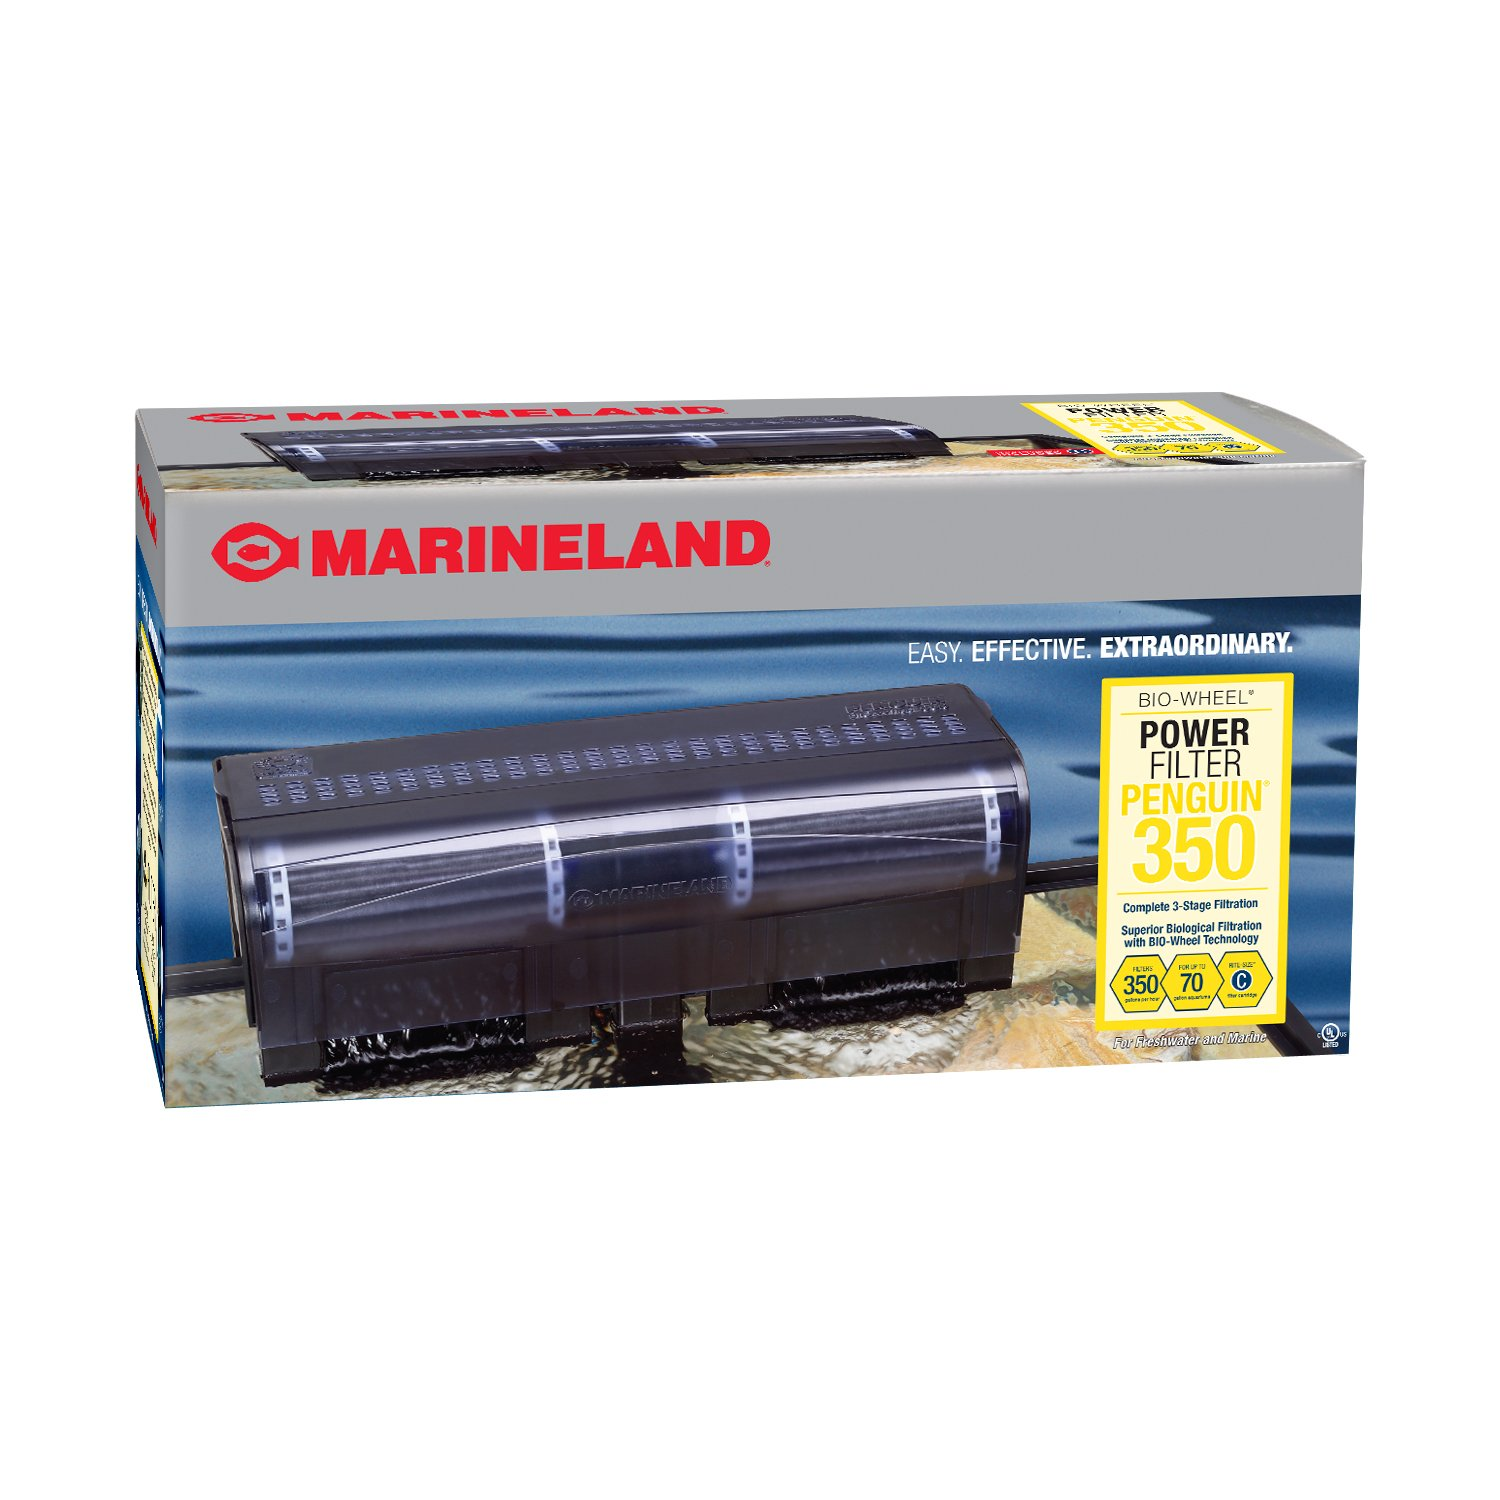 Marineland Penguin Power Filter